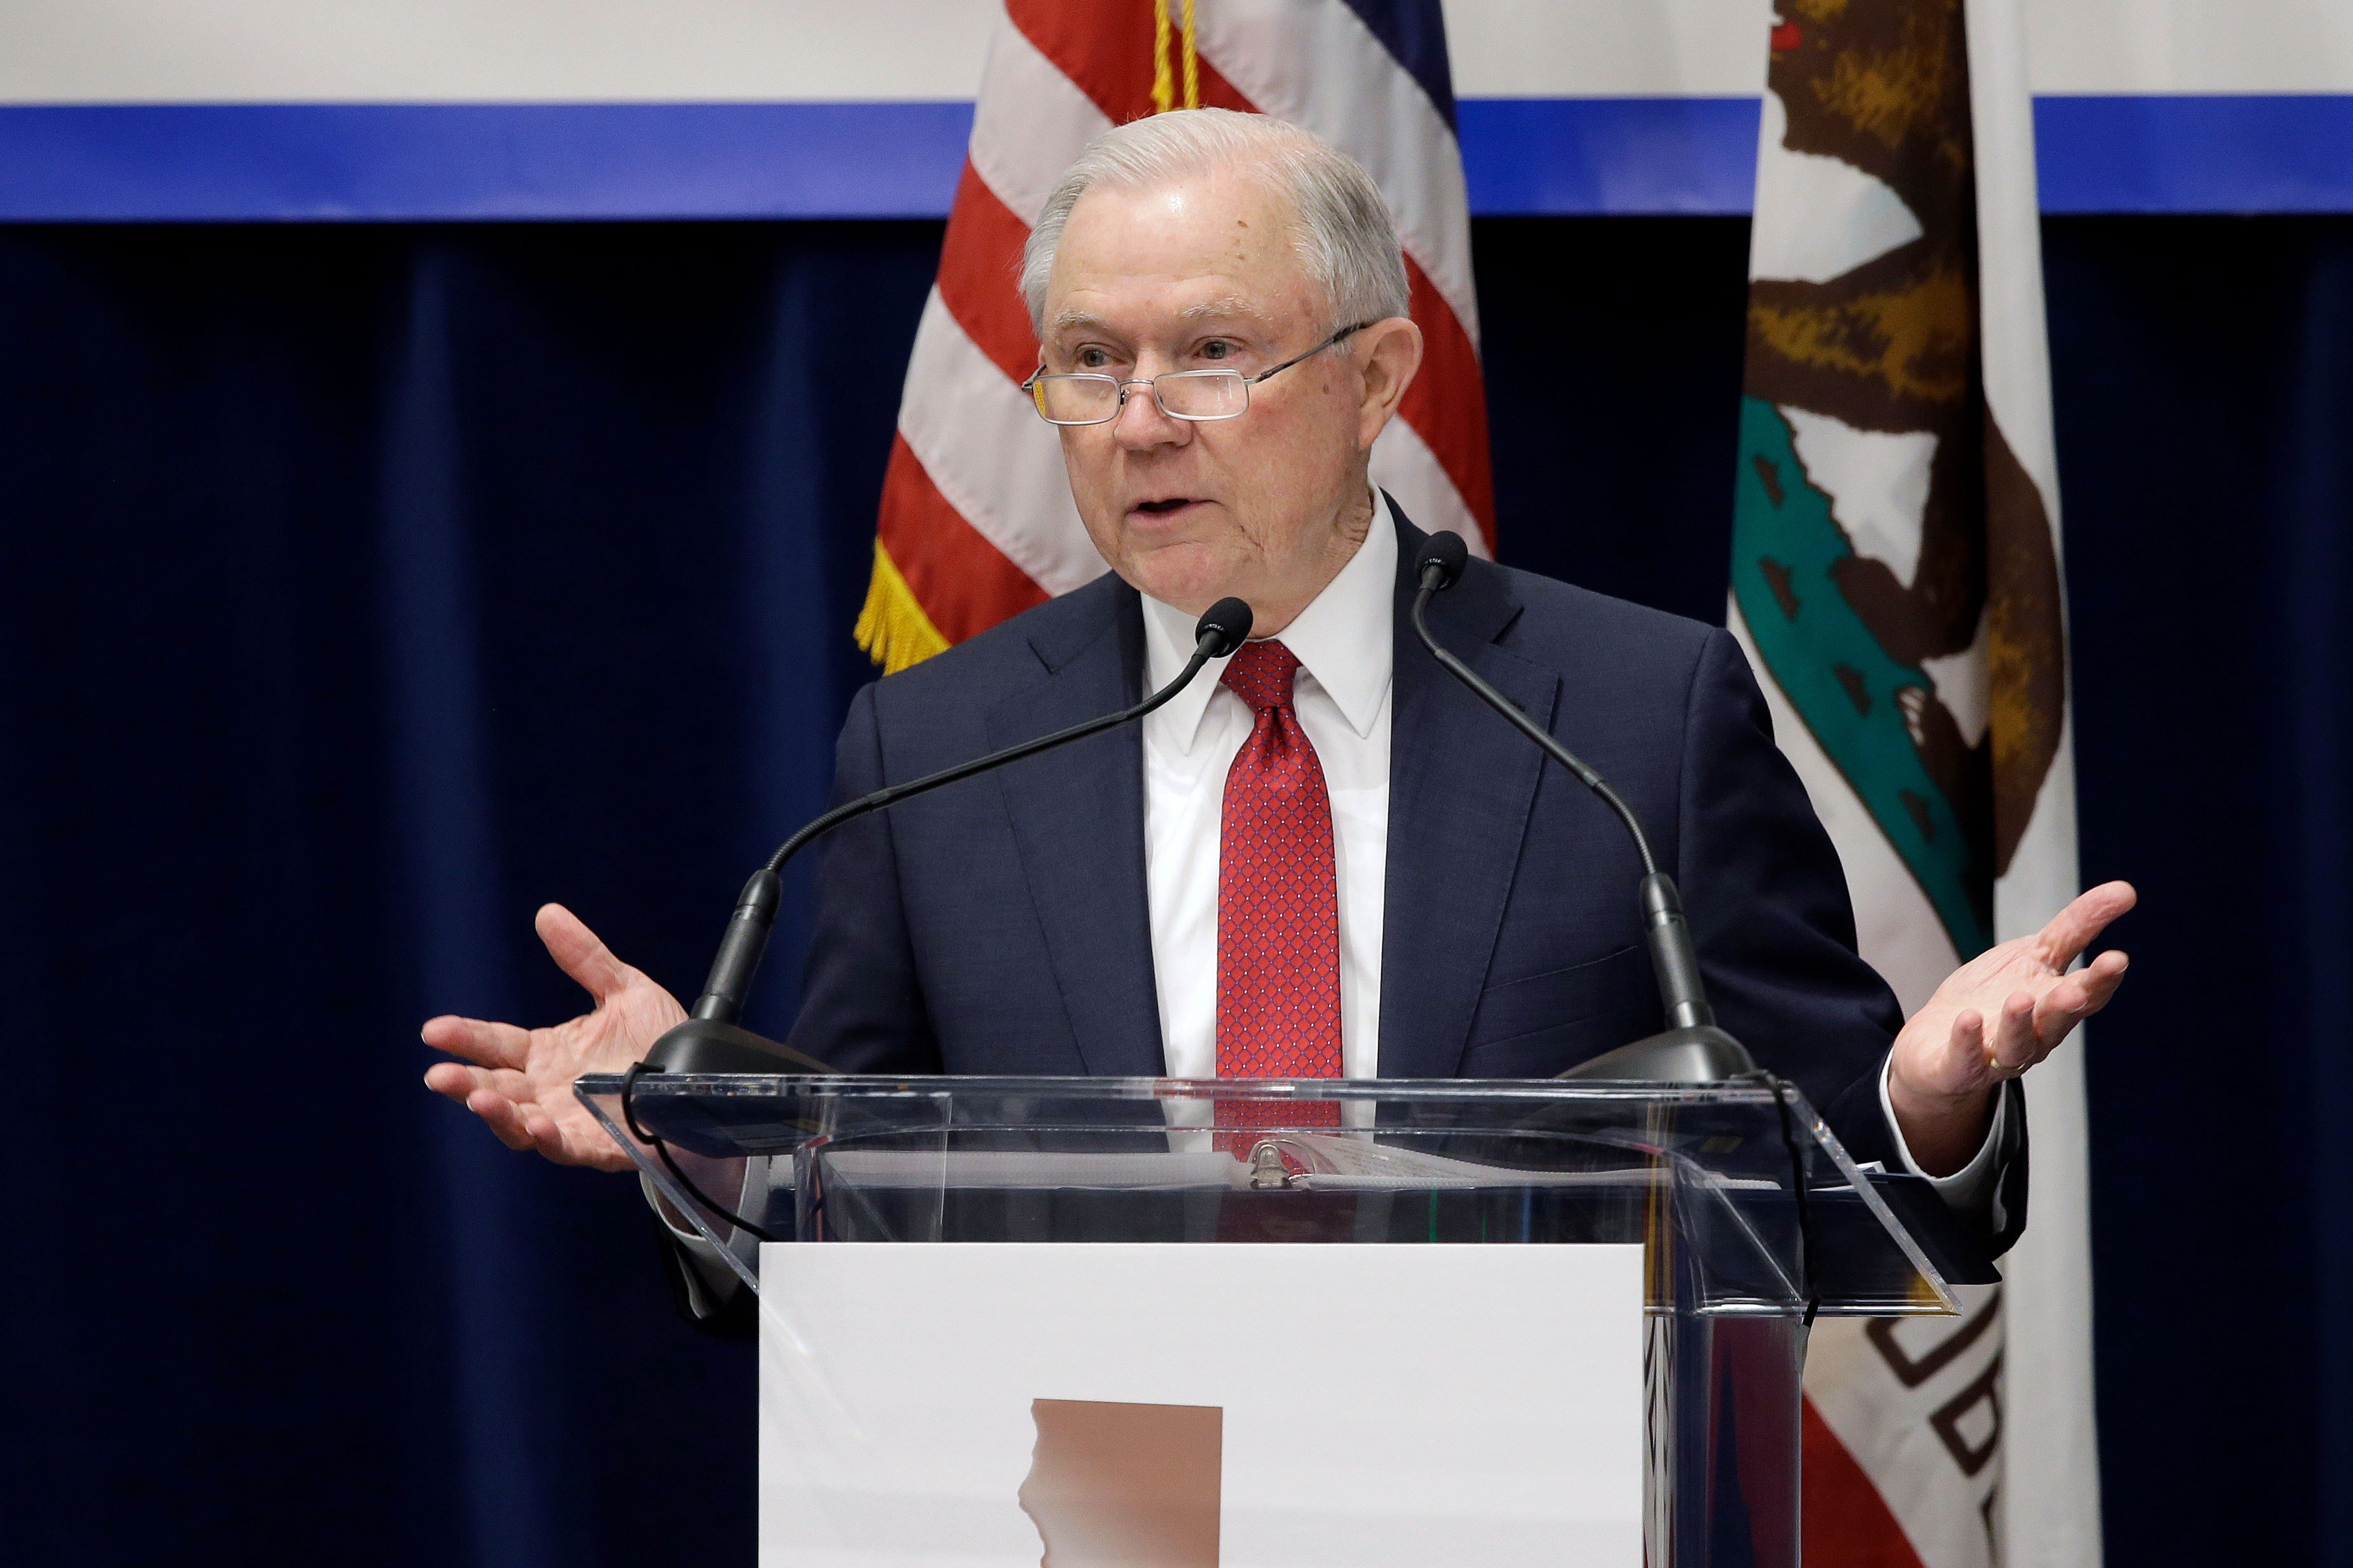 ICE spokesman says he quit over 'false' claims by DOJ officials